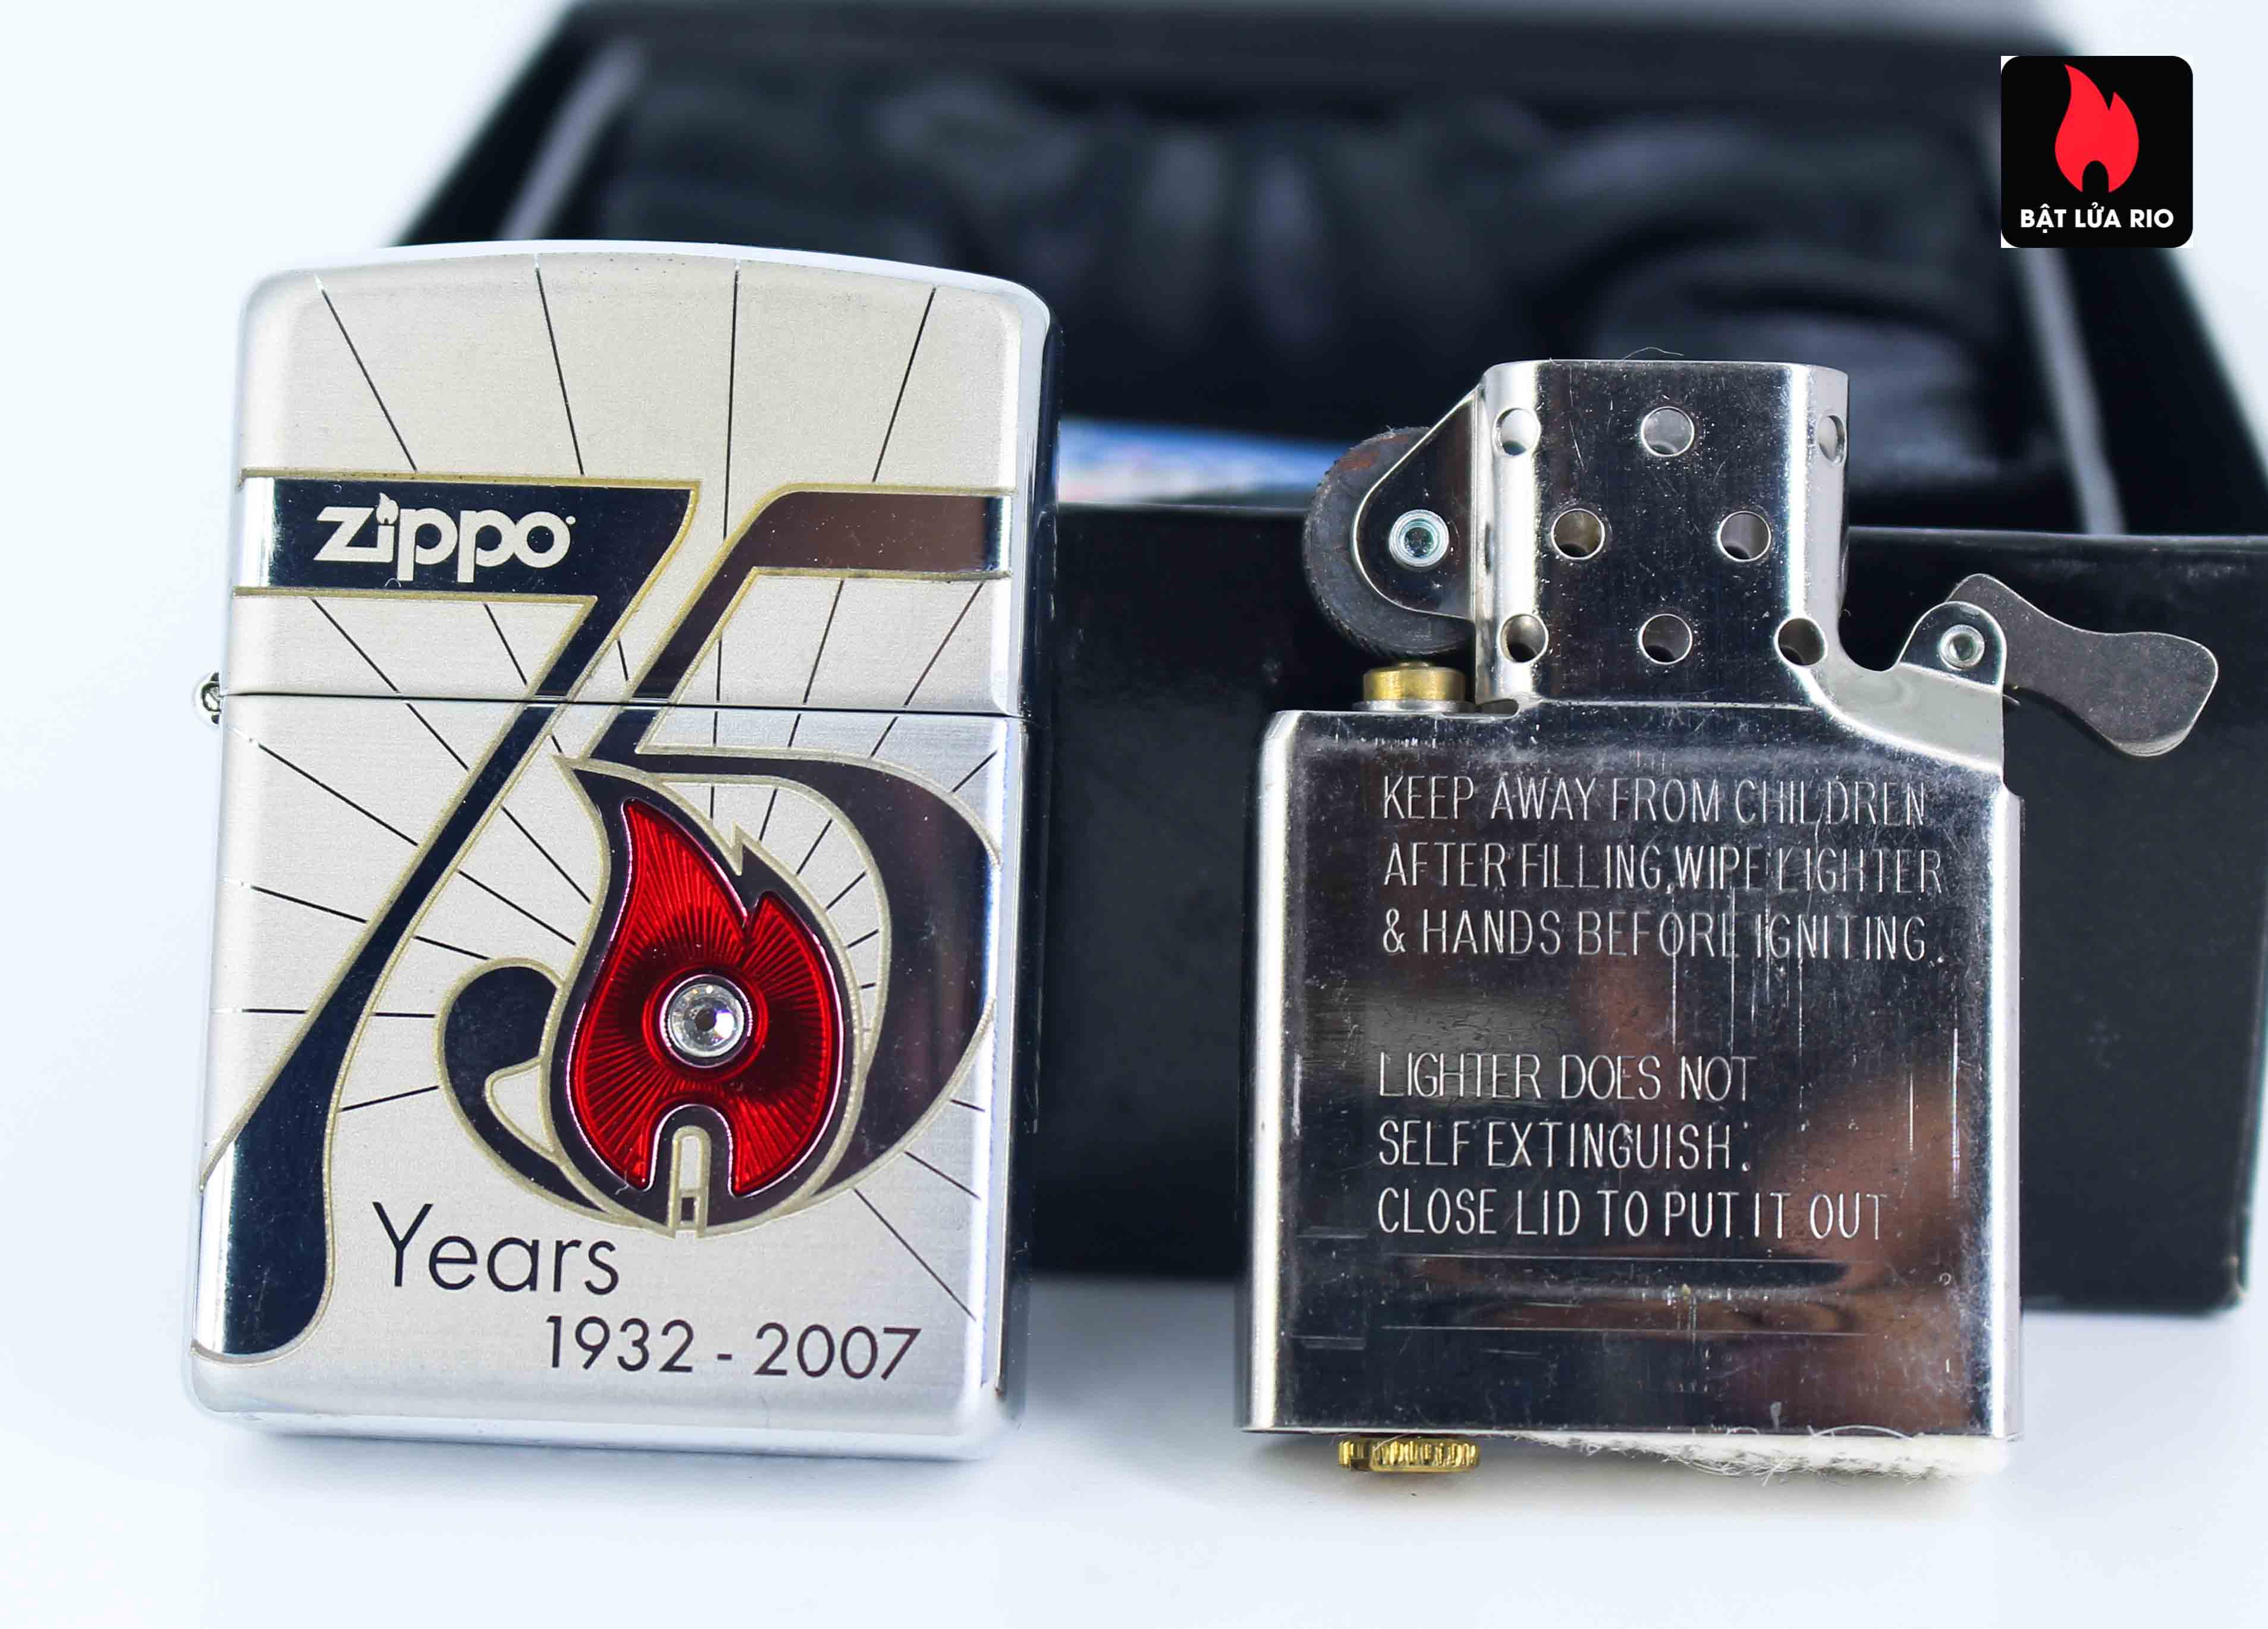 Zippo 2007 - 75th Anniversary Edition - VietNam - Limited VIE 1 Of 500 9